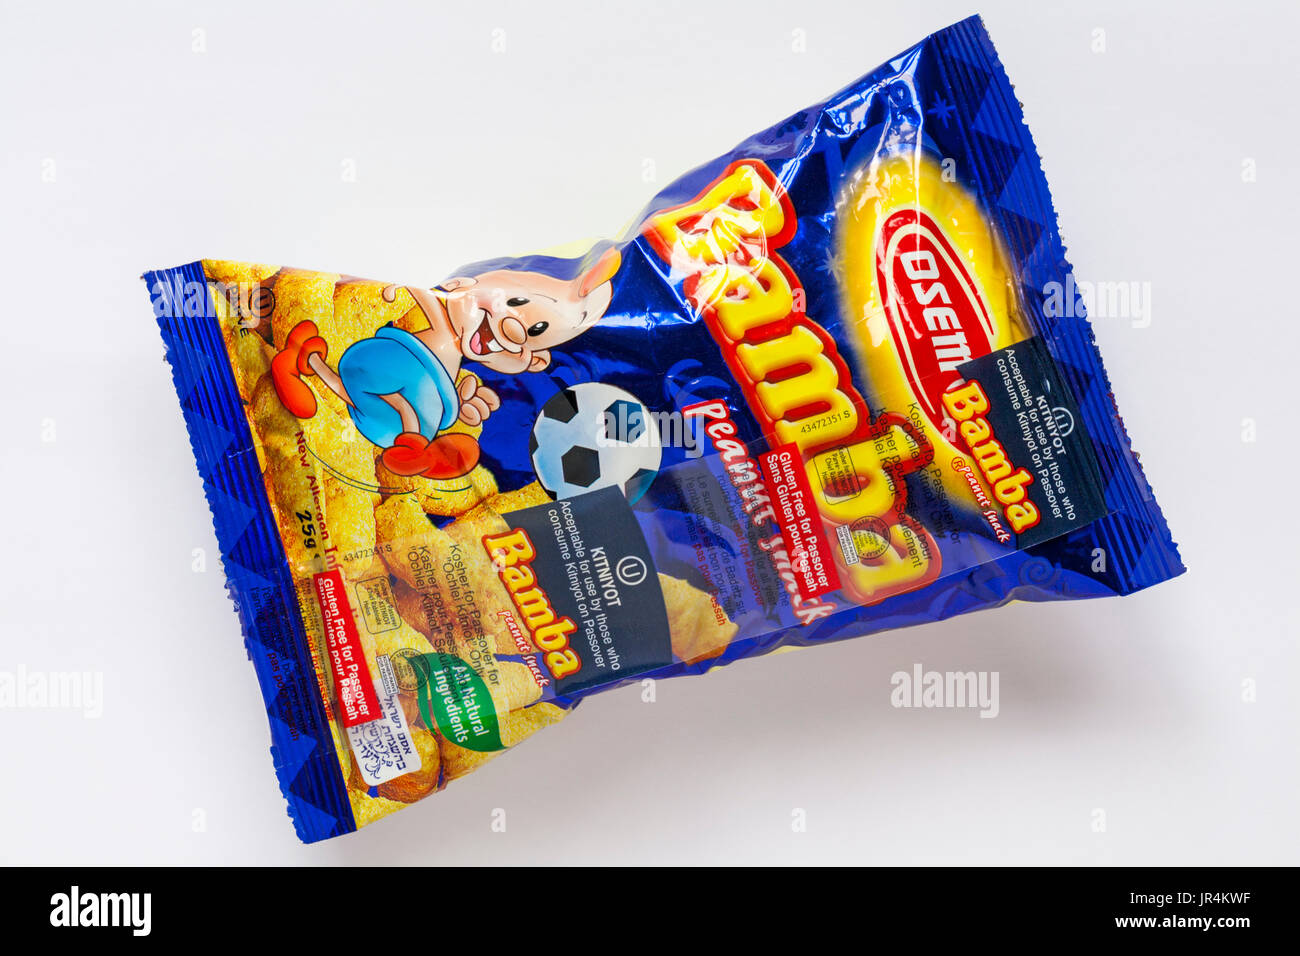 Packet of Osem Bamba peanut snack, Gluten free for Passover acceptable for use by those who consume Kitniyot on Passover, isolated on white background - Stock Image